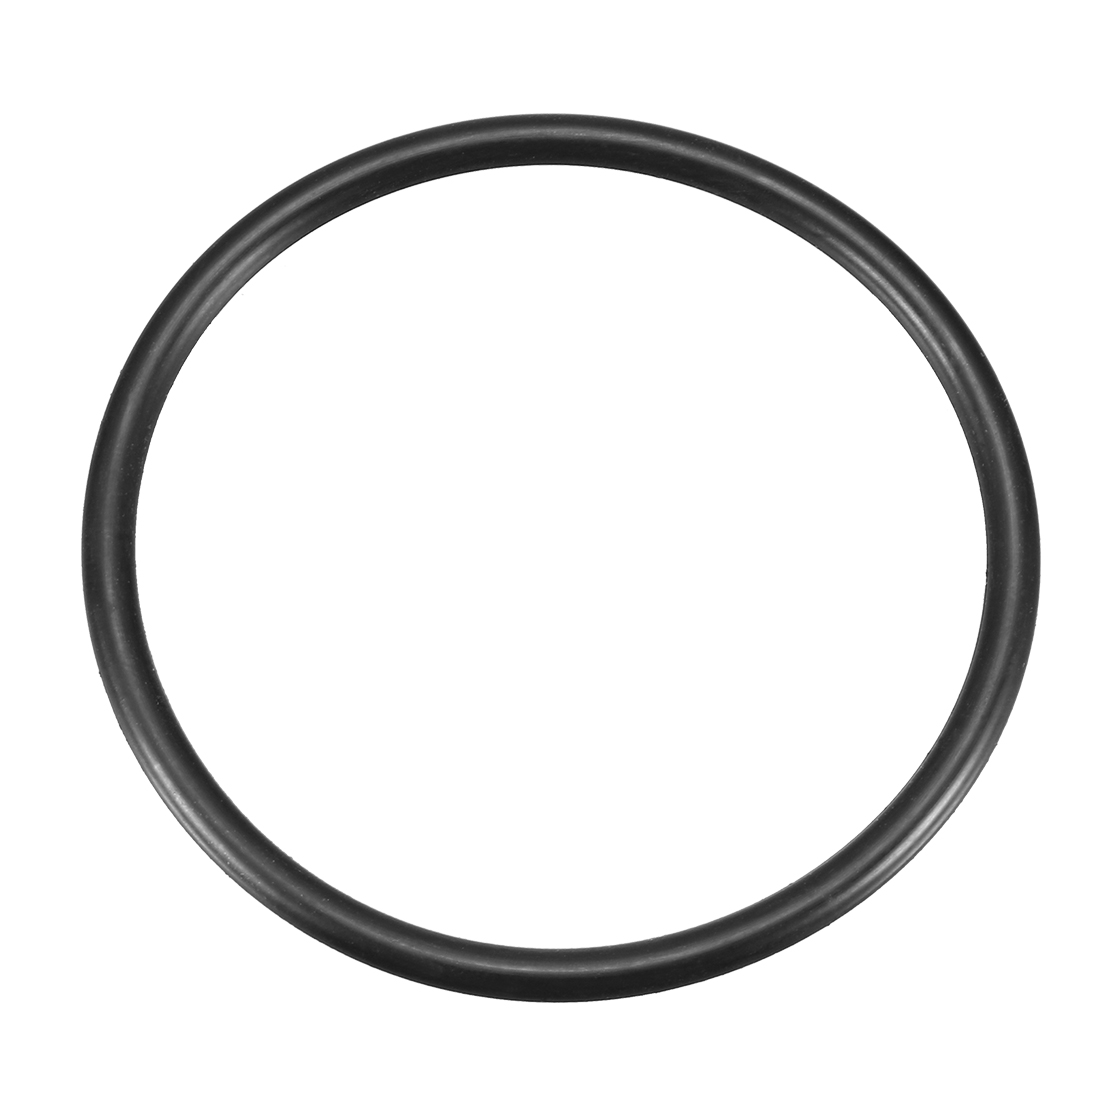 5 Pcs Black Rubber 70mm x 62mm x 4mm Oil Seal O Rings Gaskets Washers